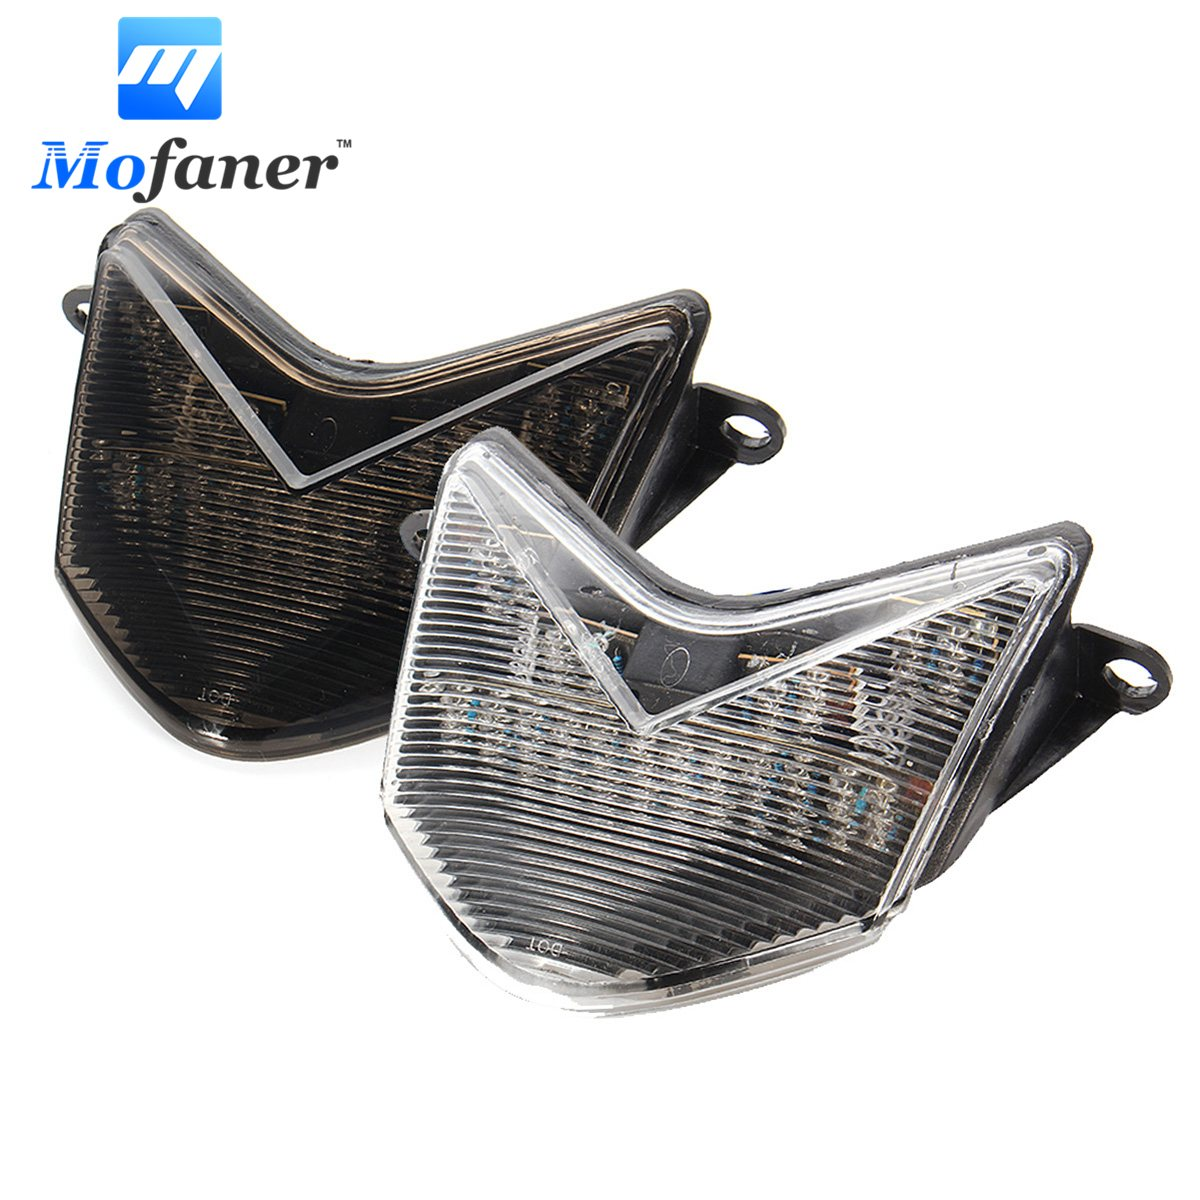 Mofaner Smoke Motorcycle Integrated Brake Tail Light For KAWASAKI NINJA ZX6RR ZX6R 636 2005 2006